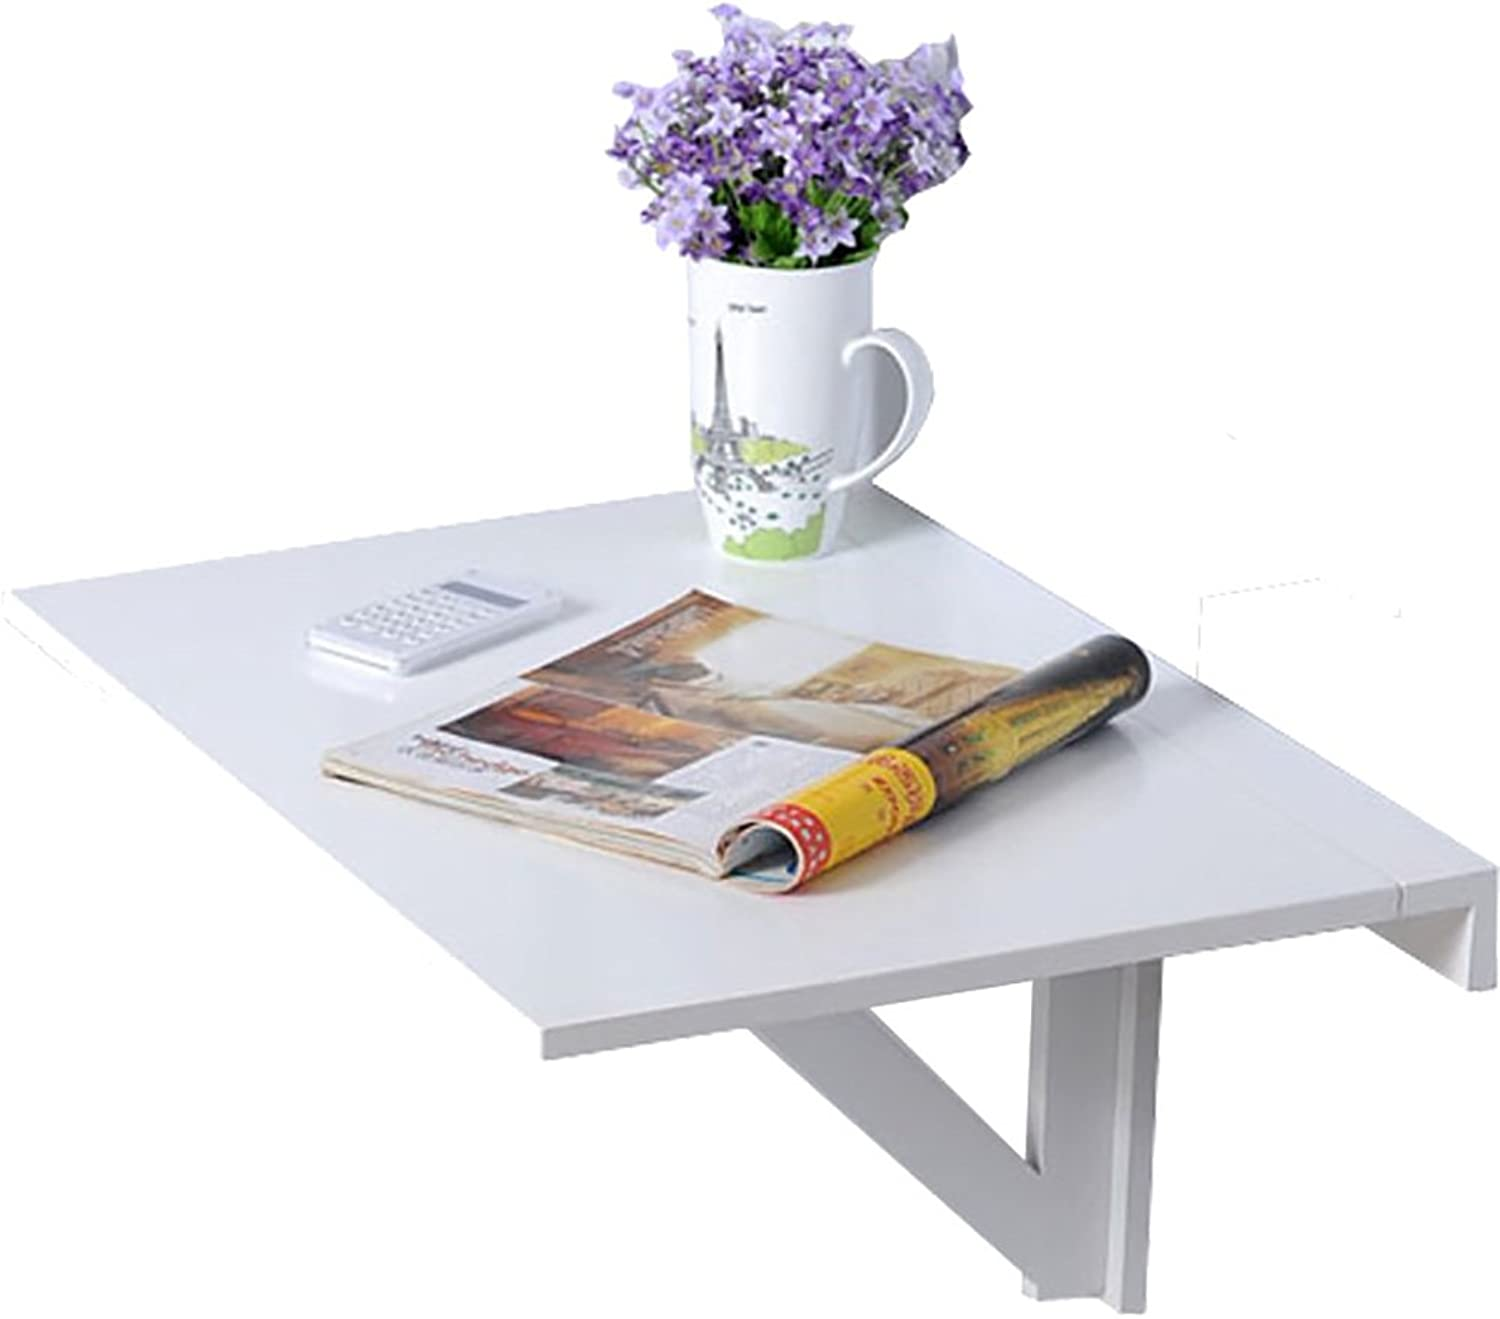 ZJM- Wall Hanging Folding Table Wall Mounted Side Table Kitchen Dining Table Computer Desk White 6040cm